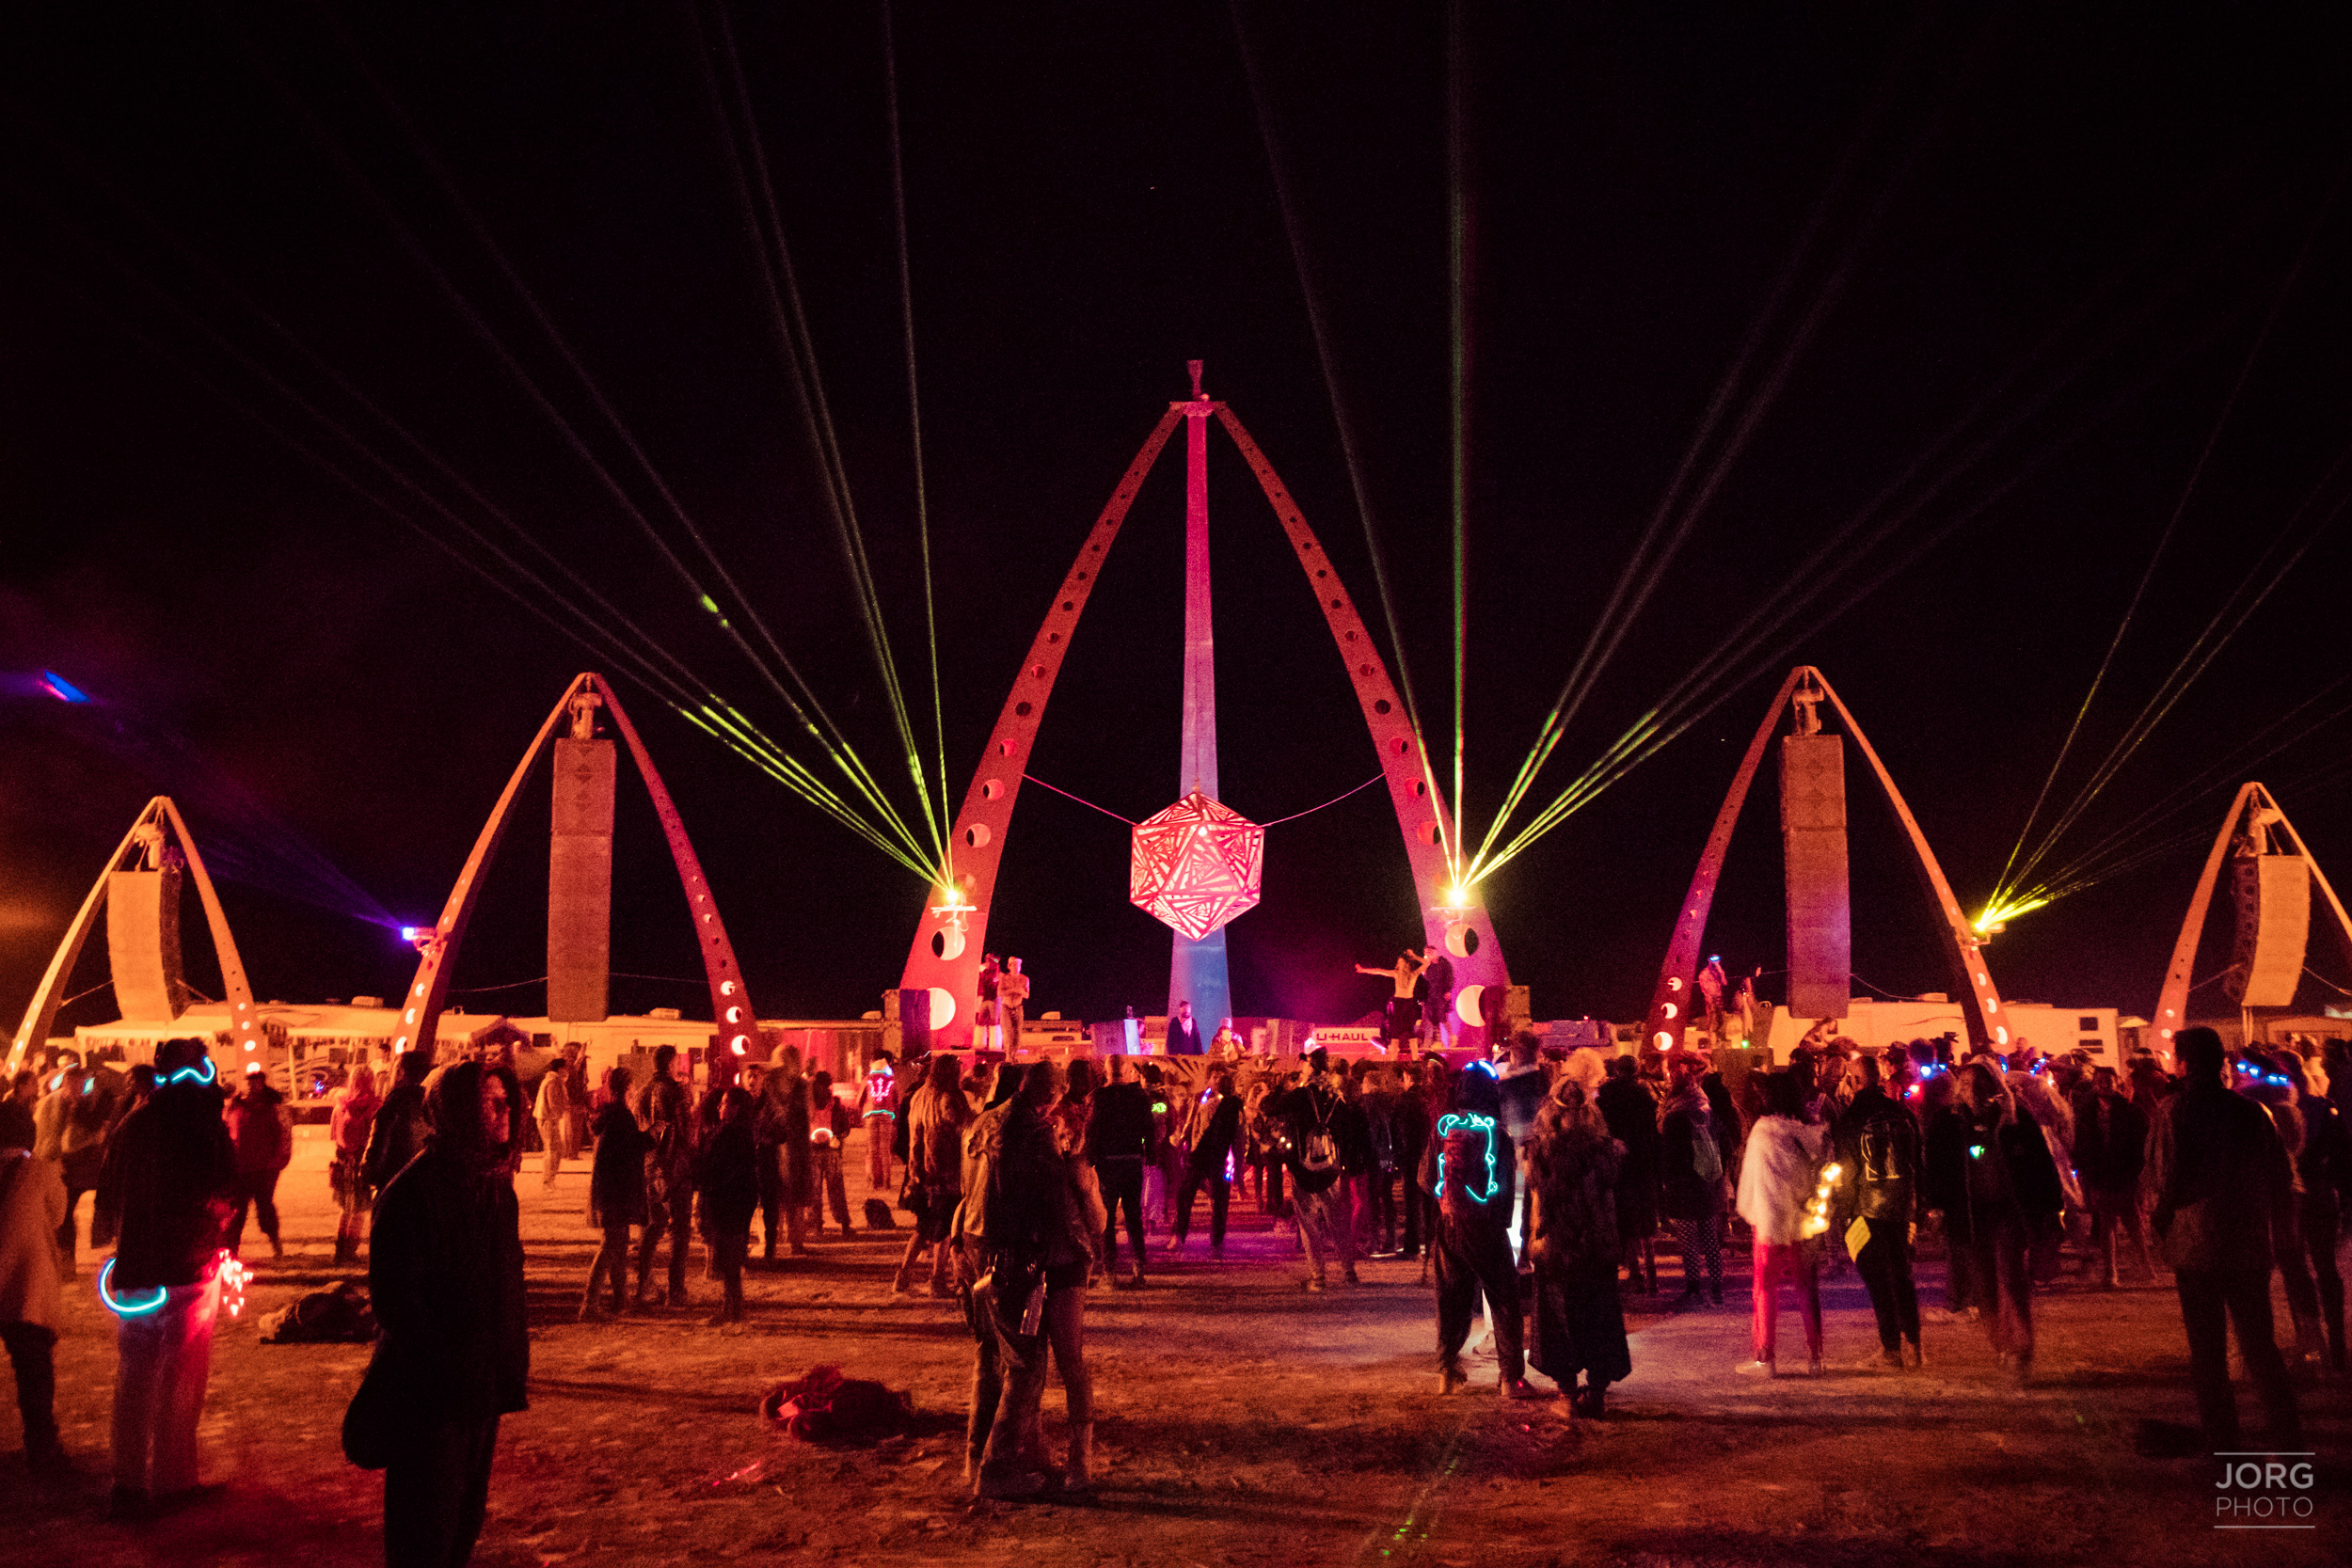 burning_man_2016_jorgphoto_37